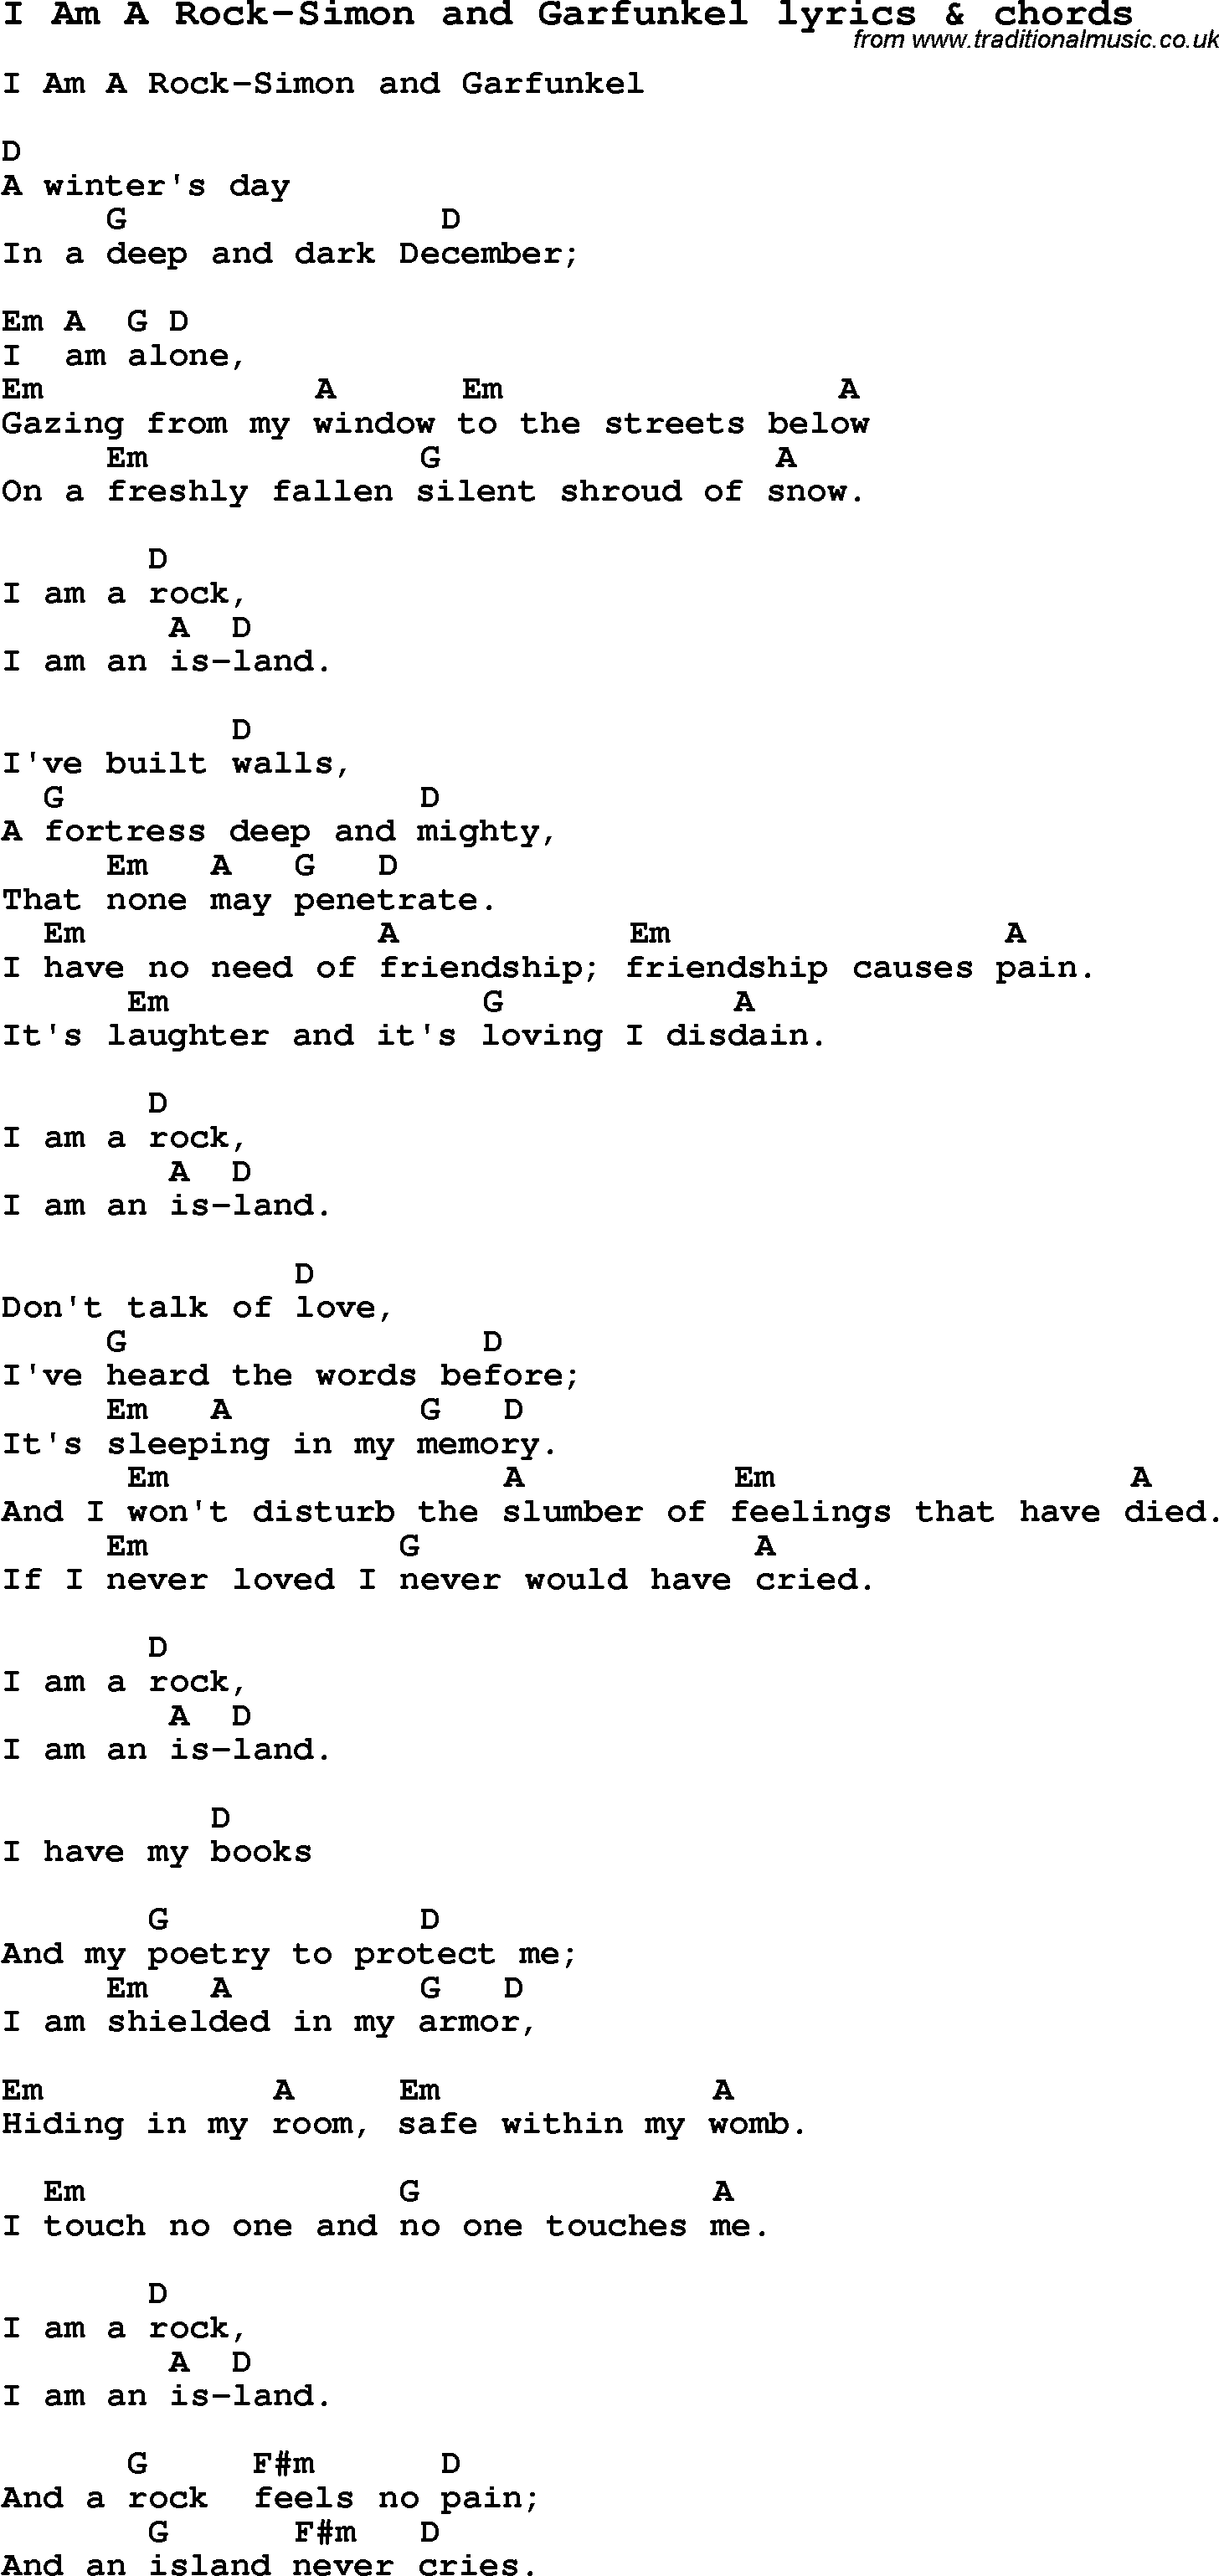 Love Song Lyrics For I Am A Rock Simon And Garfunkel With Chords